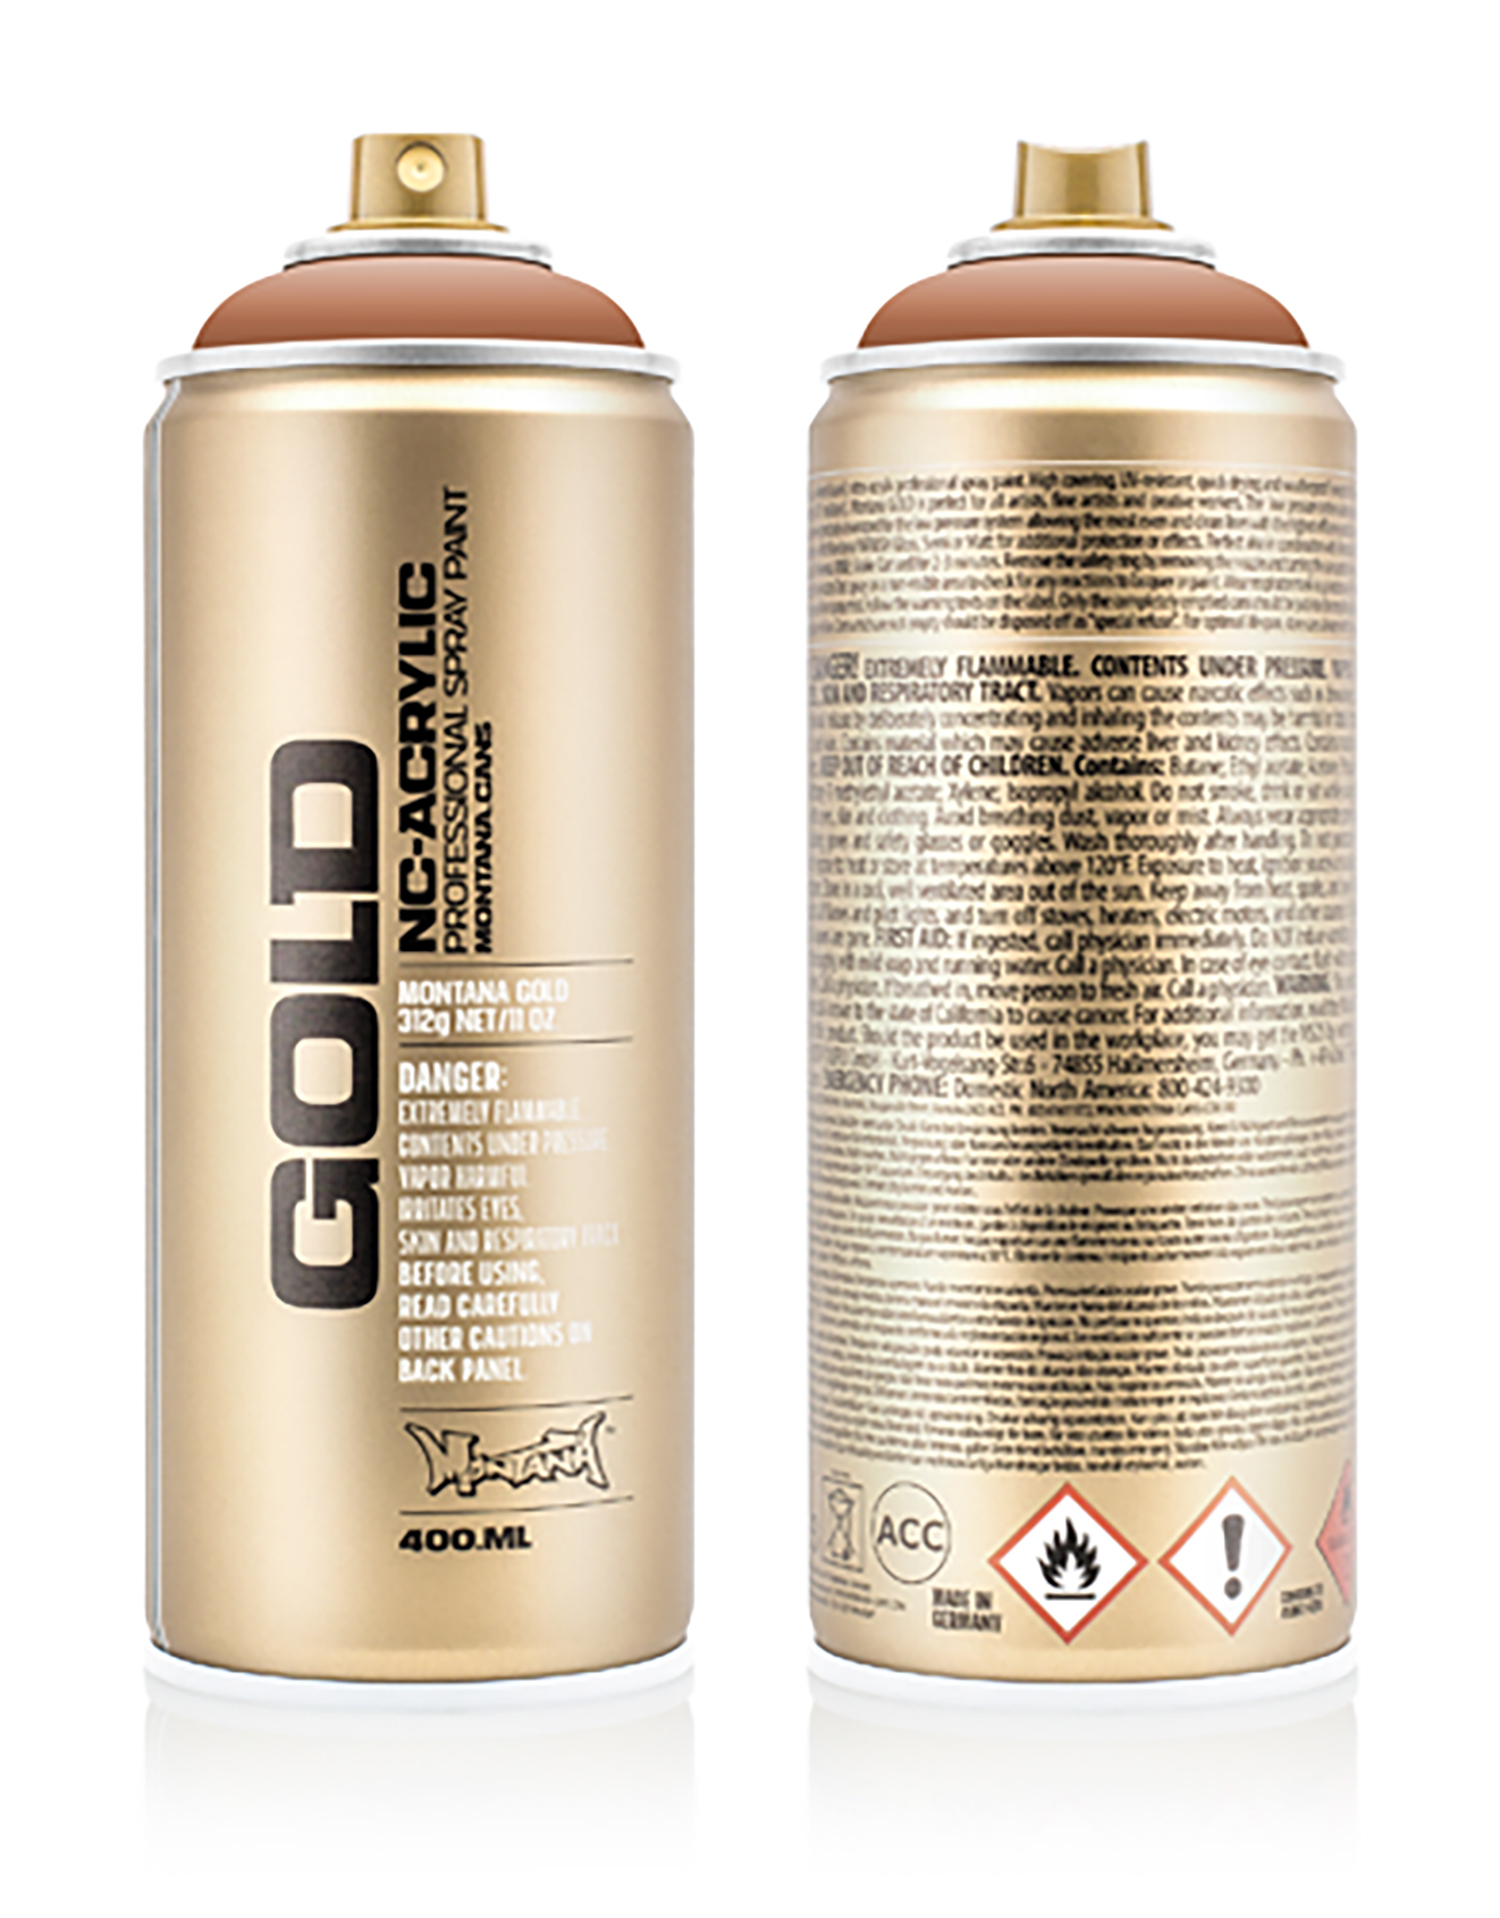 MONTANA-GOLD-SPRAY-400ML-G-8090